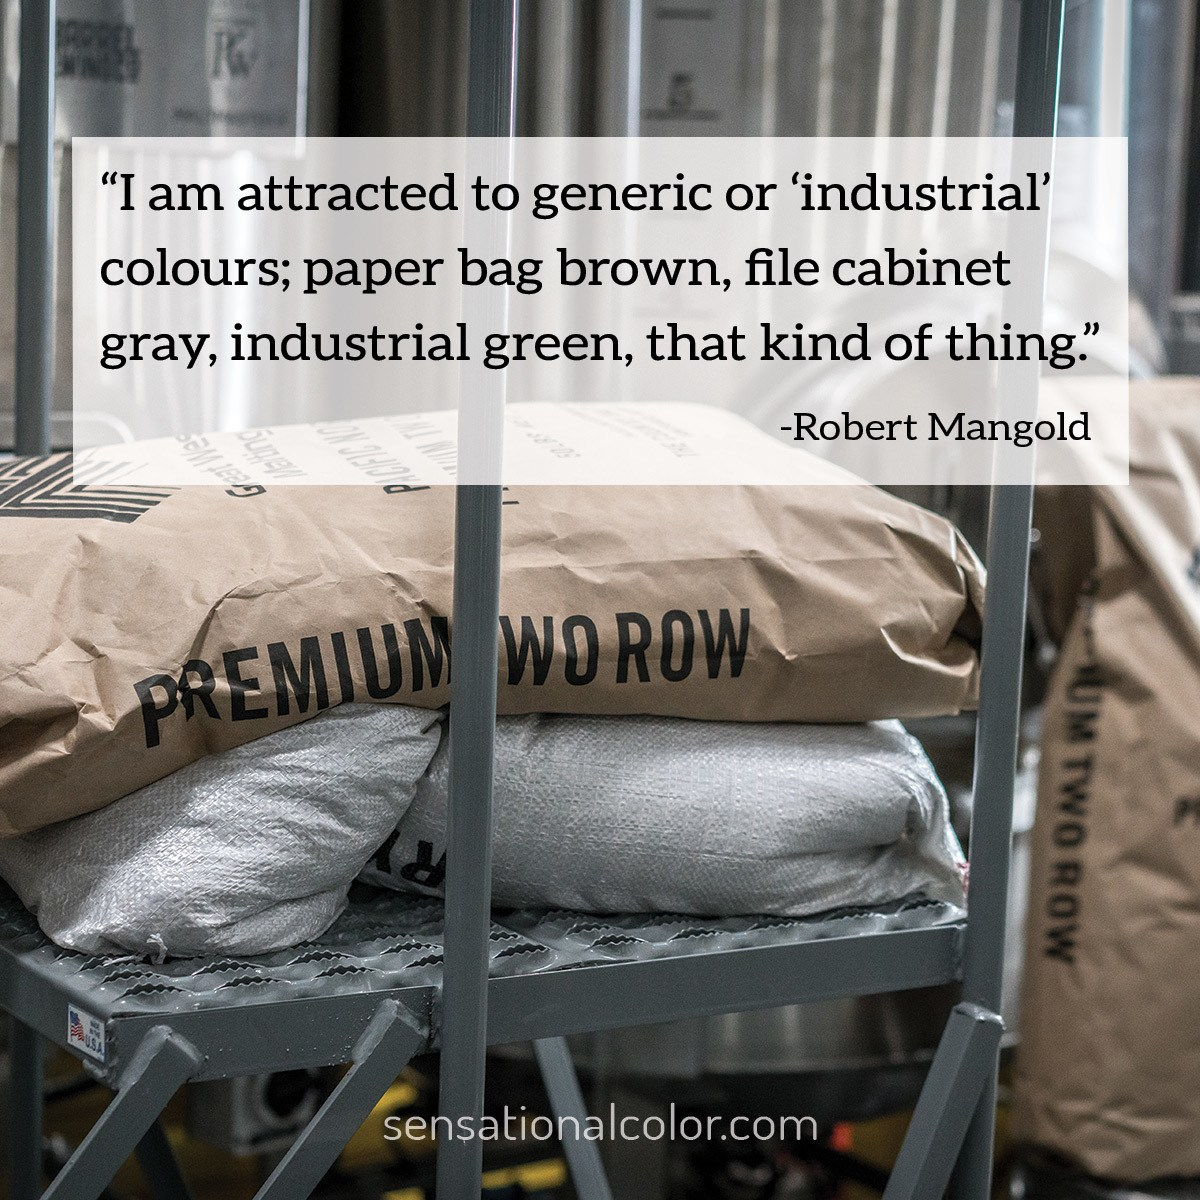 """I am attracted to generic or 'industrial' colours; paper bag brown, file cabinet gray, industrial green, that kind of thing."" - Robert Mangold"